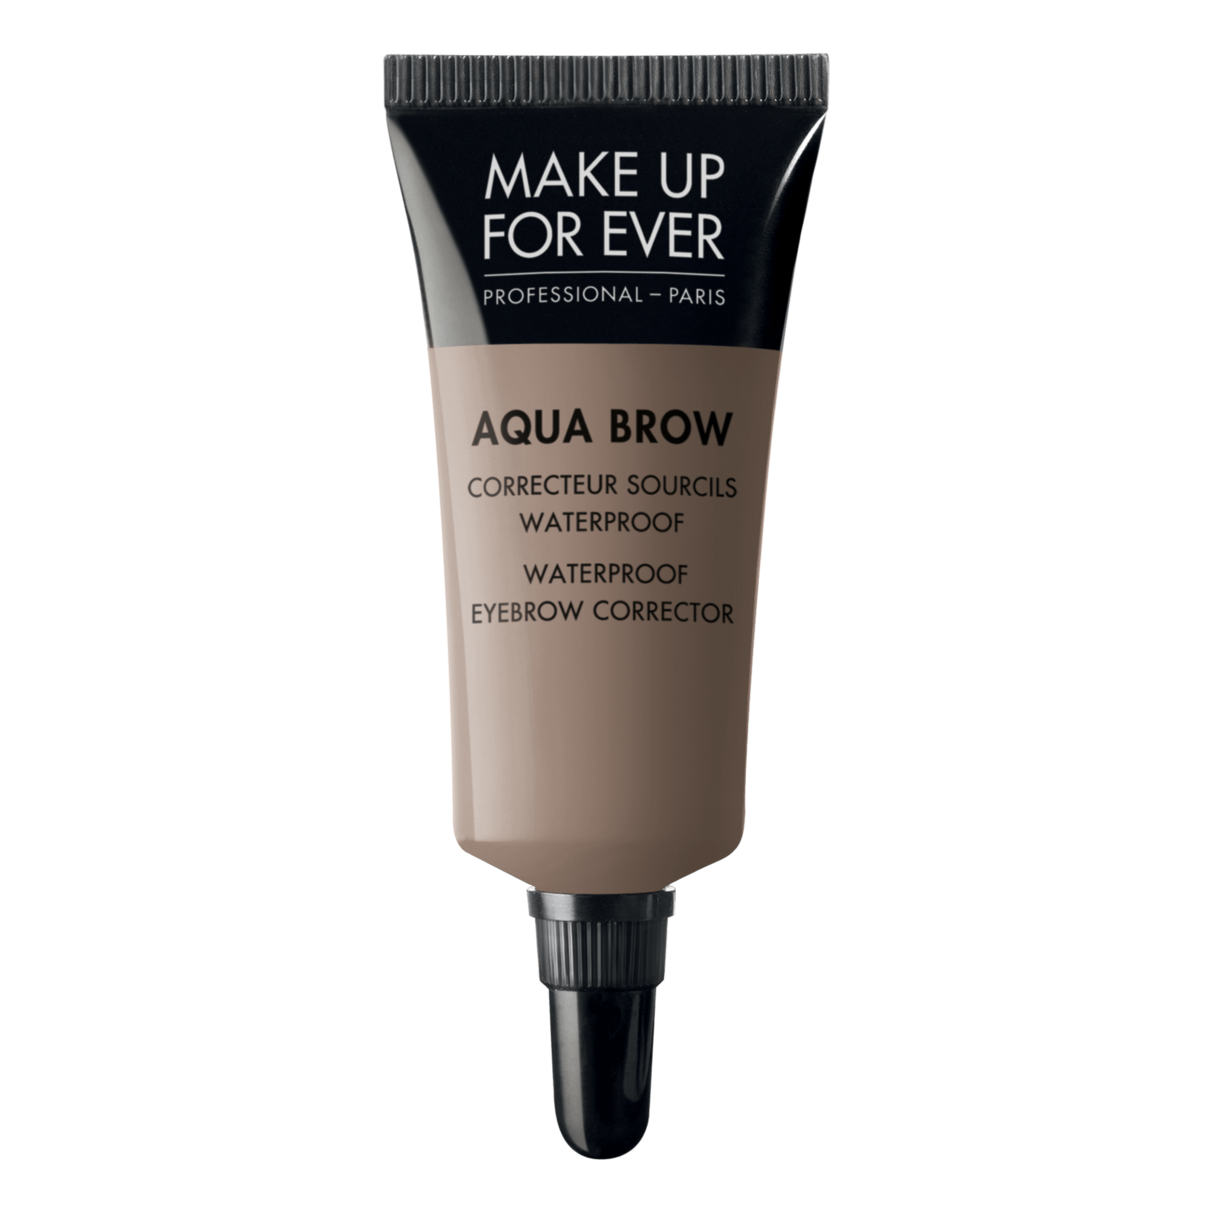 Aqua Brow Light Blond Waterproof Eyebrow Corrector 01710 Beauty